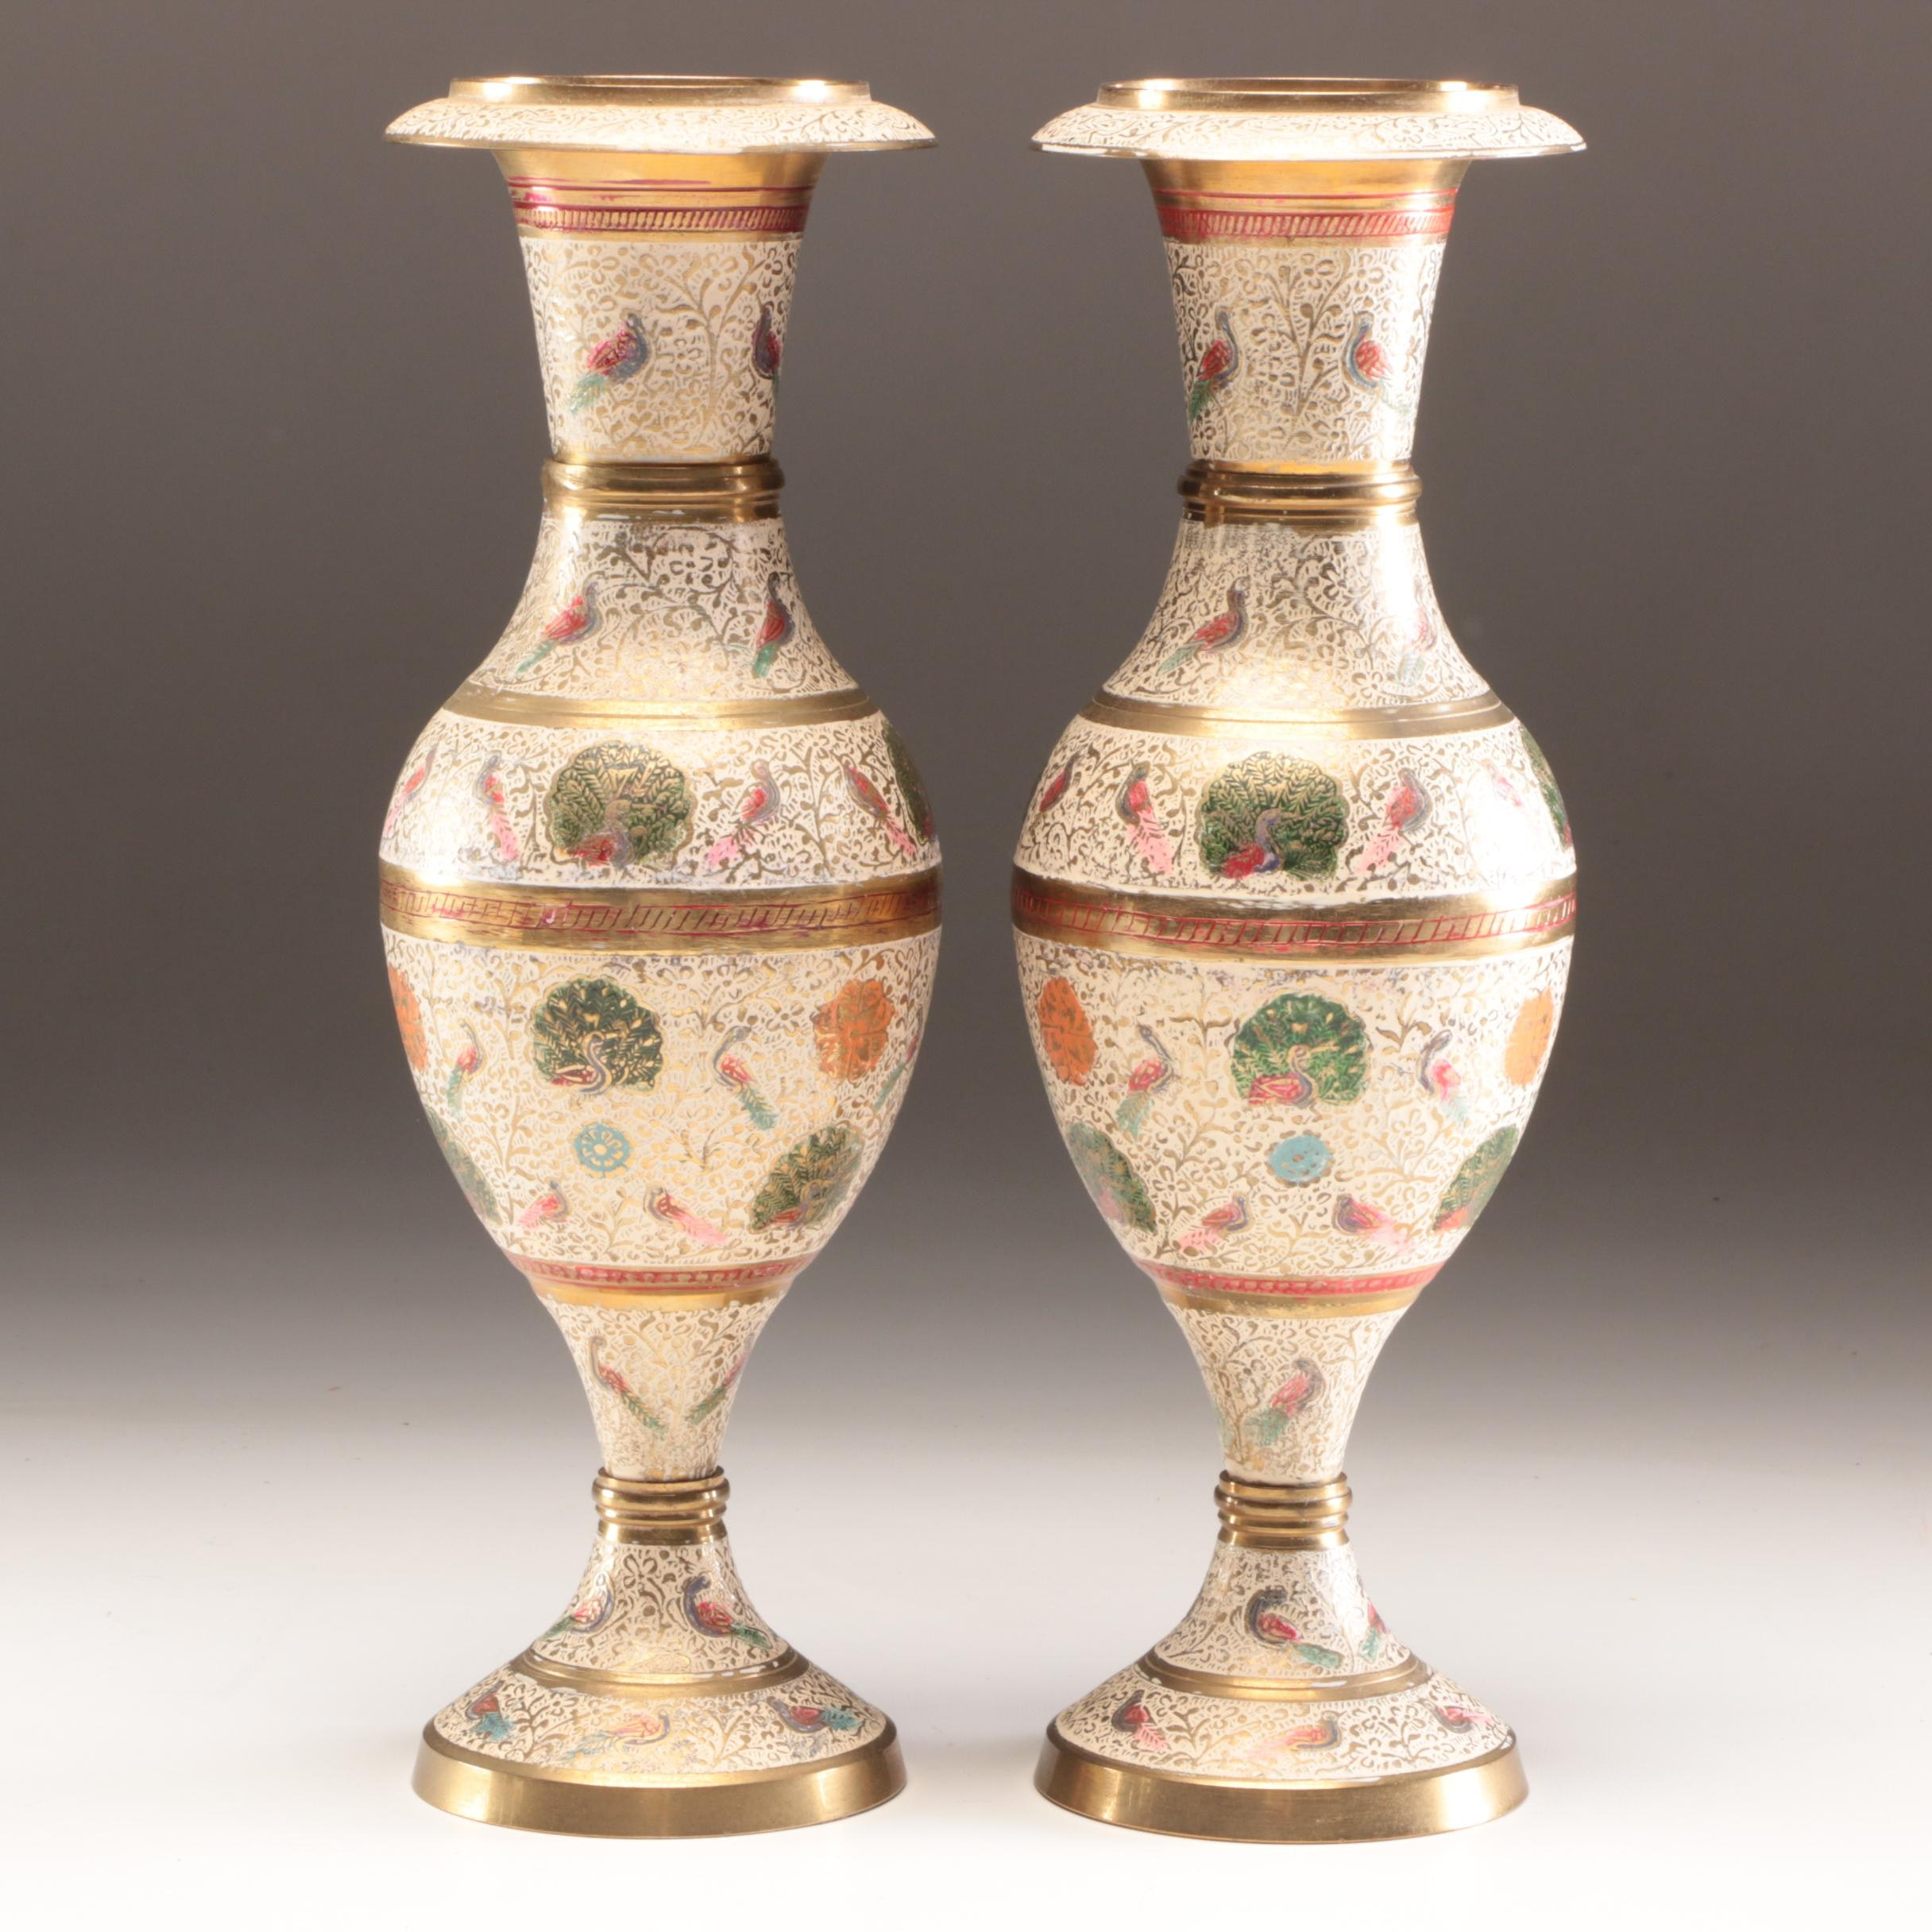 Hand-Painted Enamel and Brass Vases, Mid to Late 20th Century